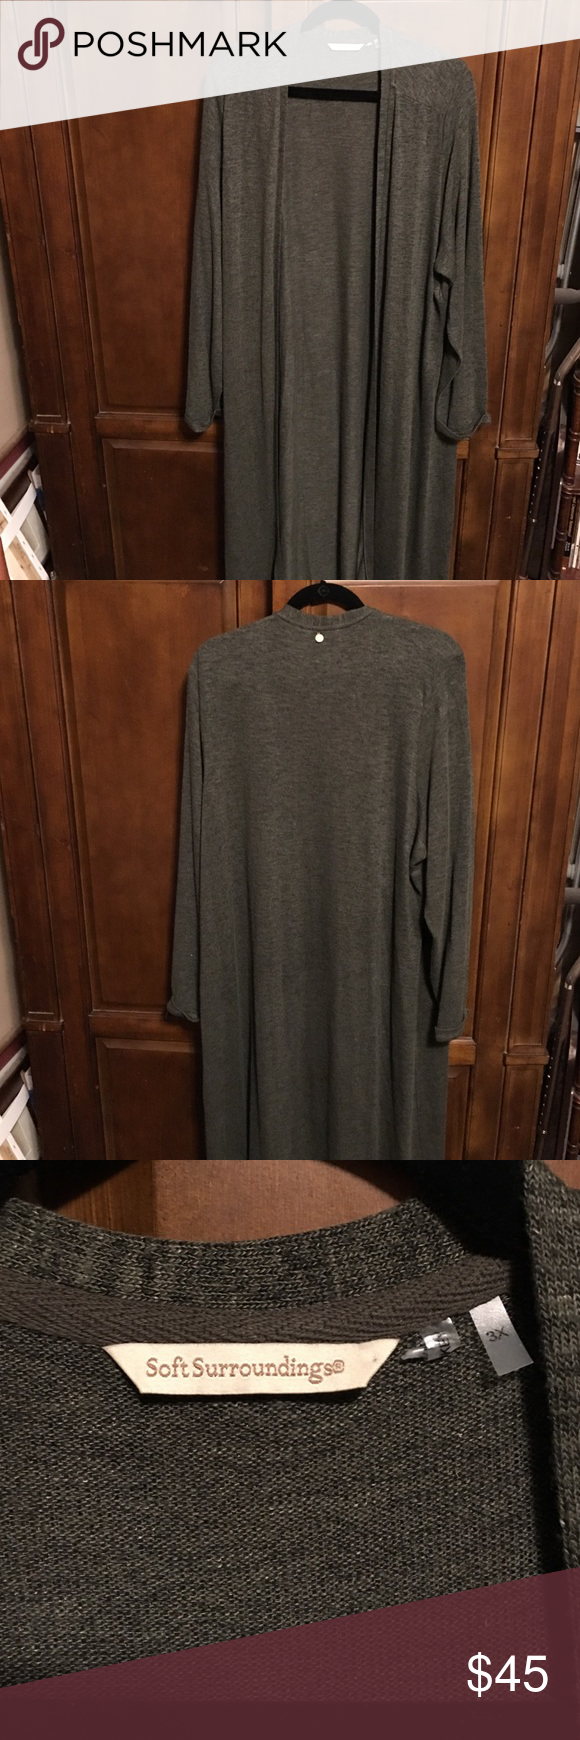 Soft Surroundings Duster Long cardigan. Fall Collection. Worn once. Soft and warm. Feel free to offer or bundle to save money! Soft Surroundings Sweaters Cardigans